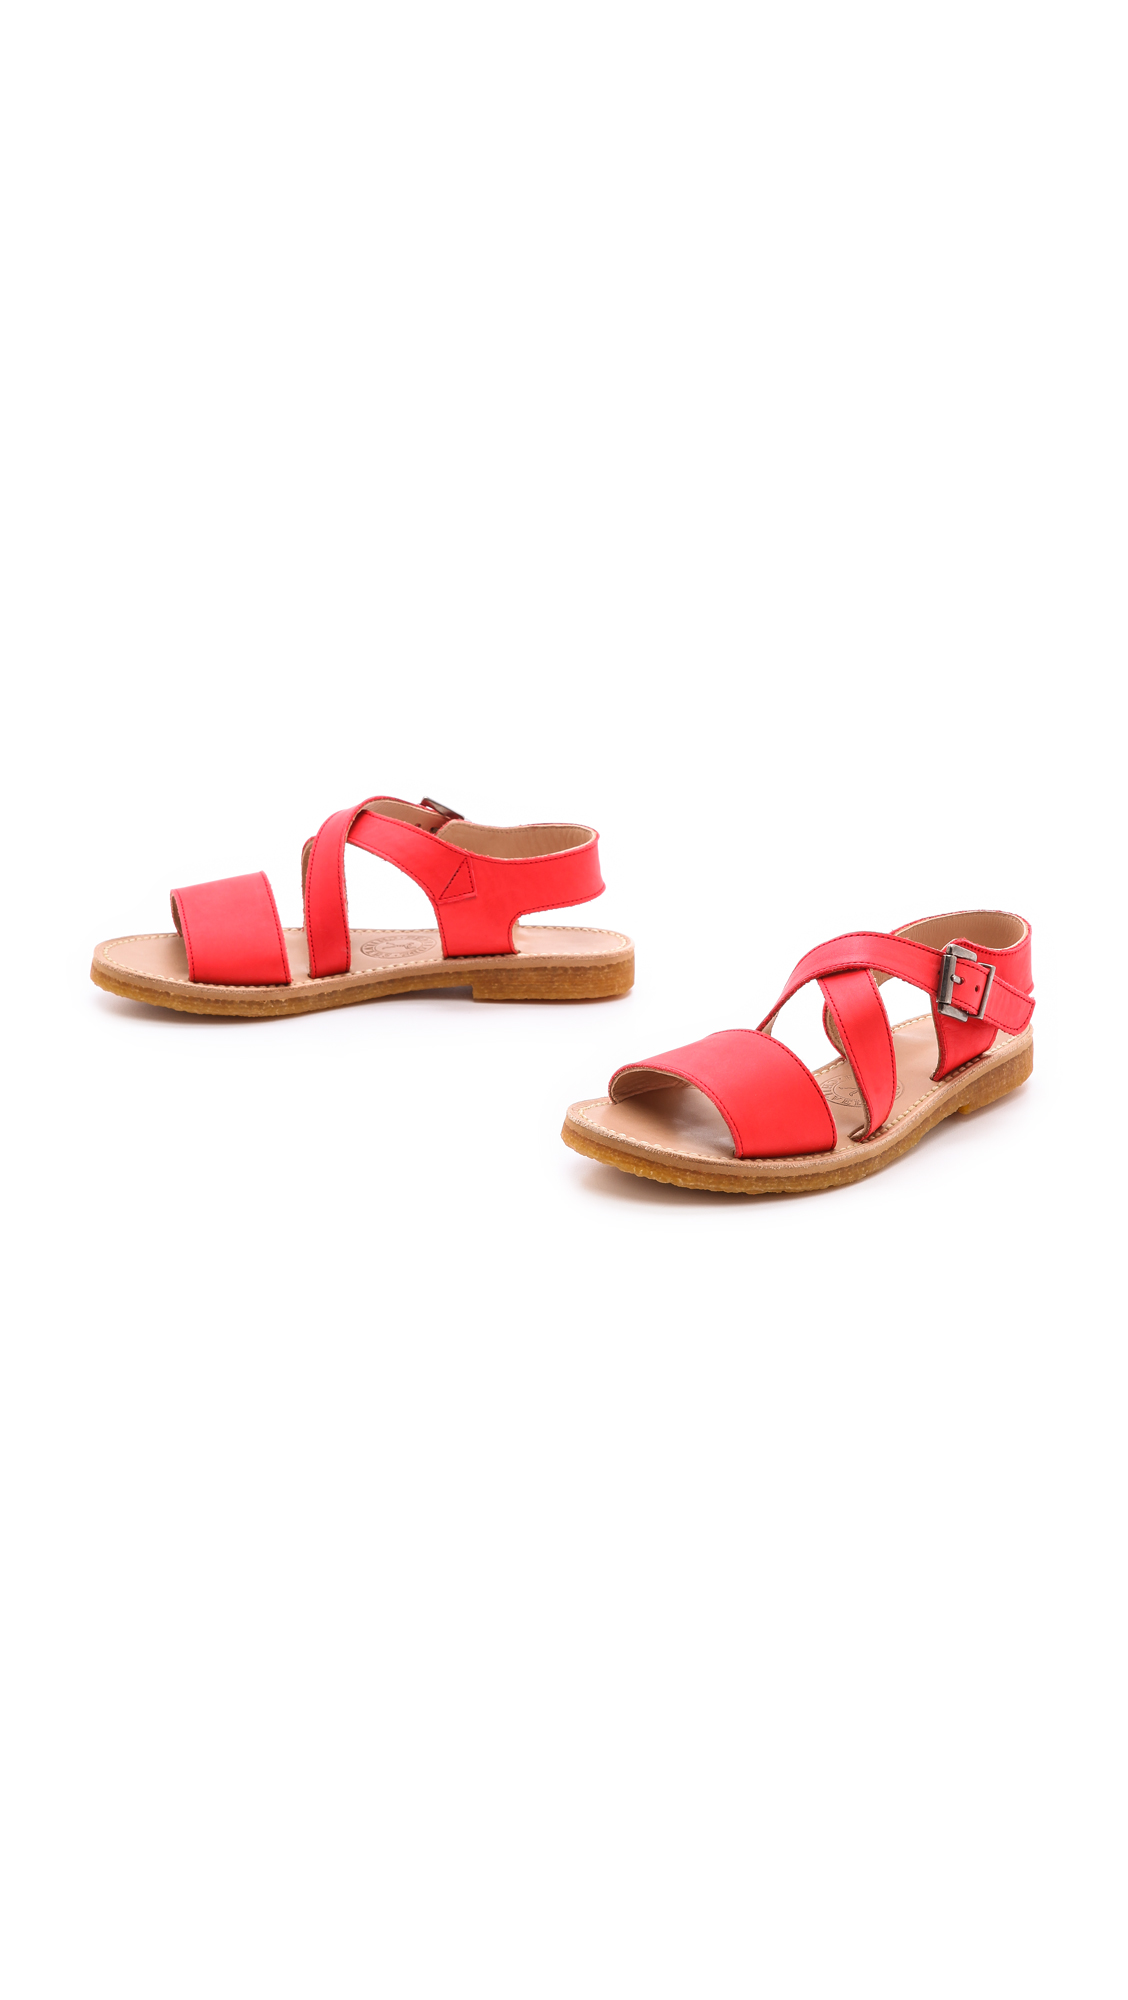 Penelope Chilvers Sandals Penelope Chilvers Cresta